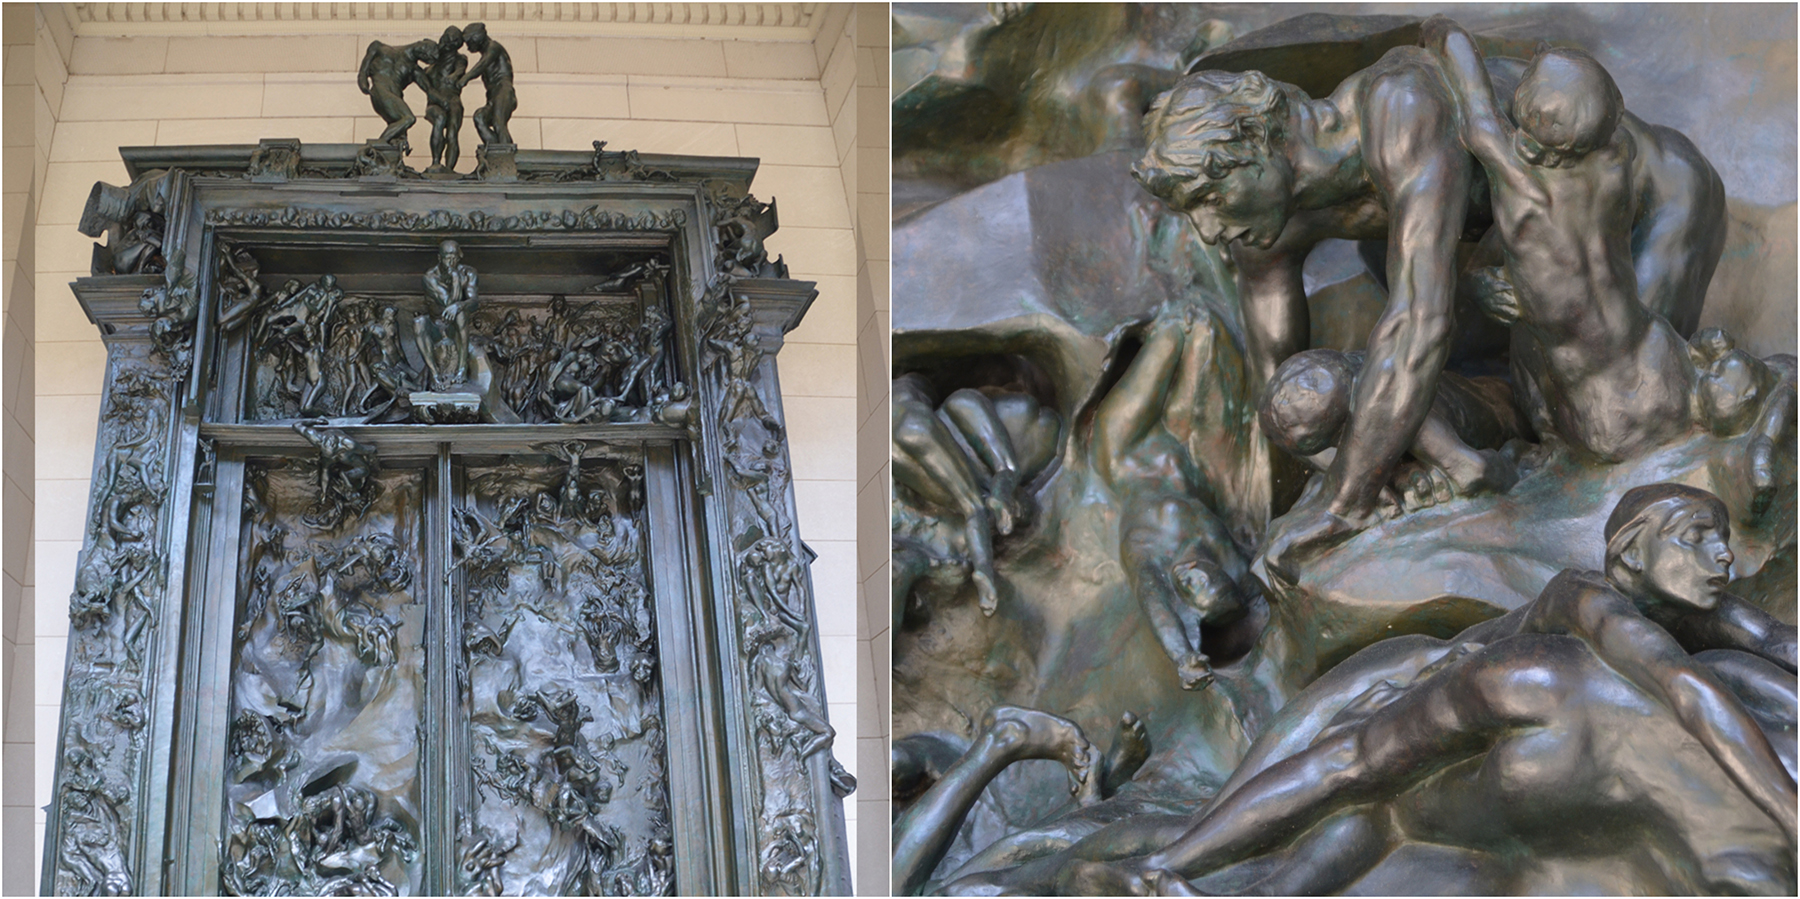 Full view and detail view of Rodin's bronze Gates of Hell at the Rodin Museum in Philadelphia